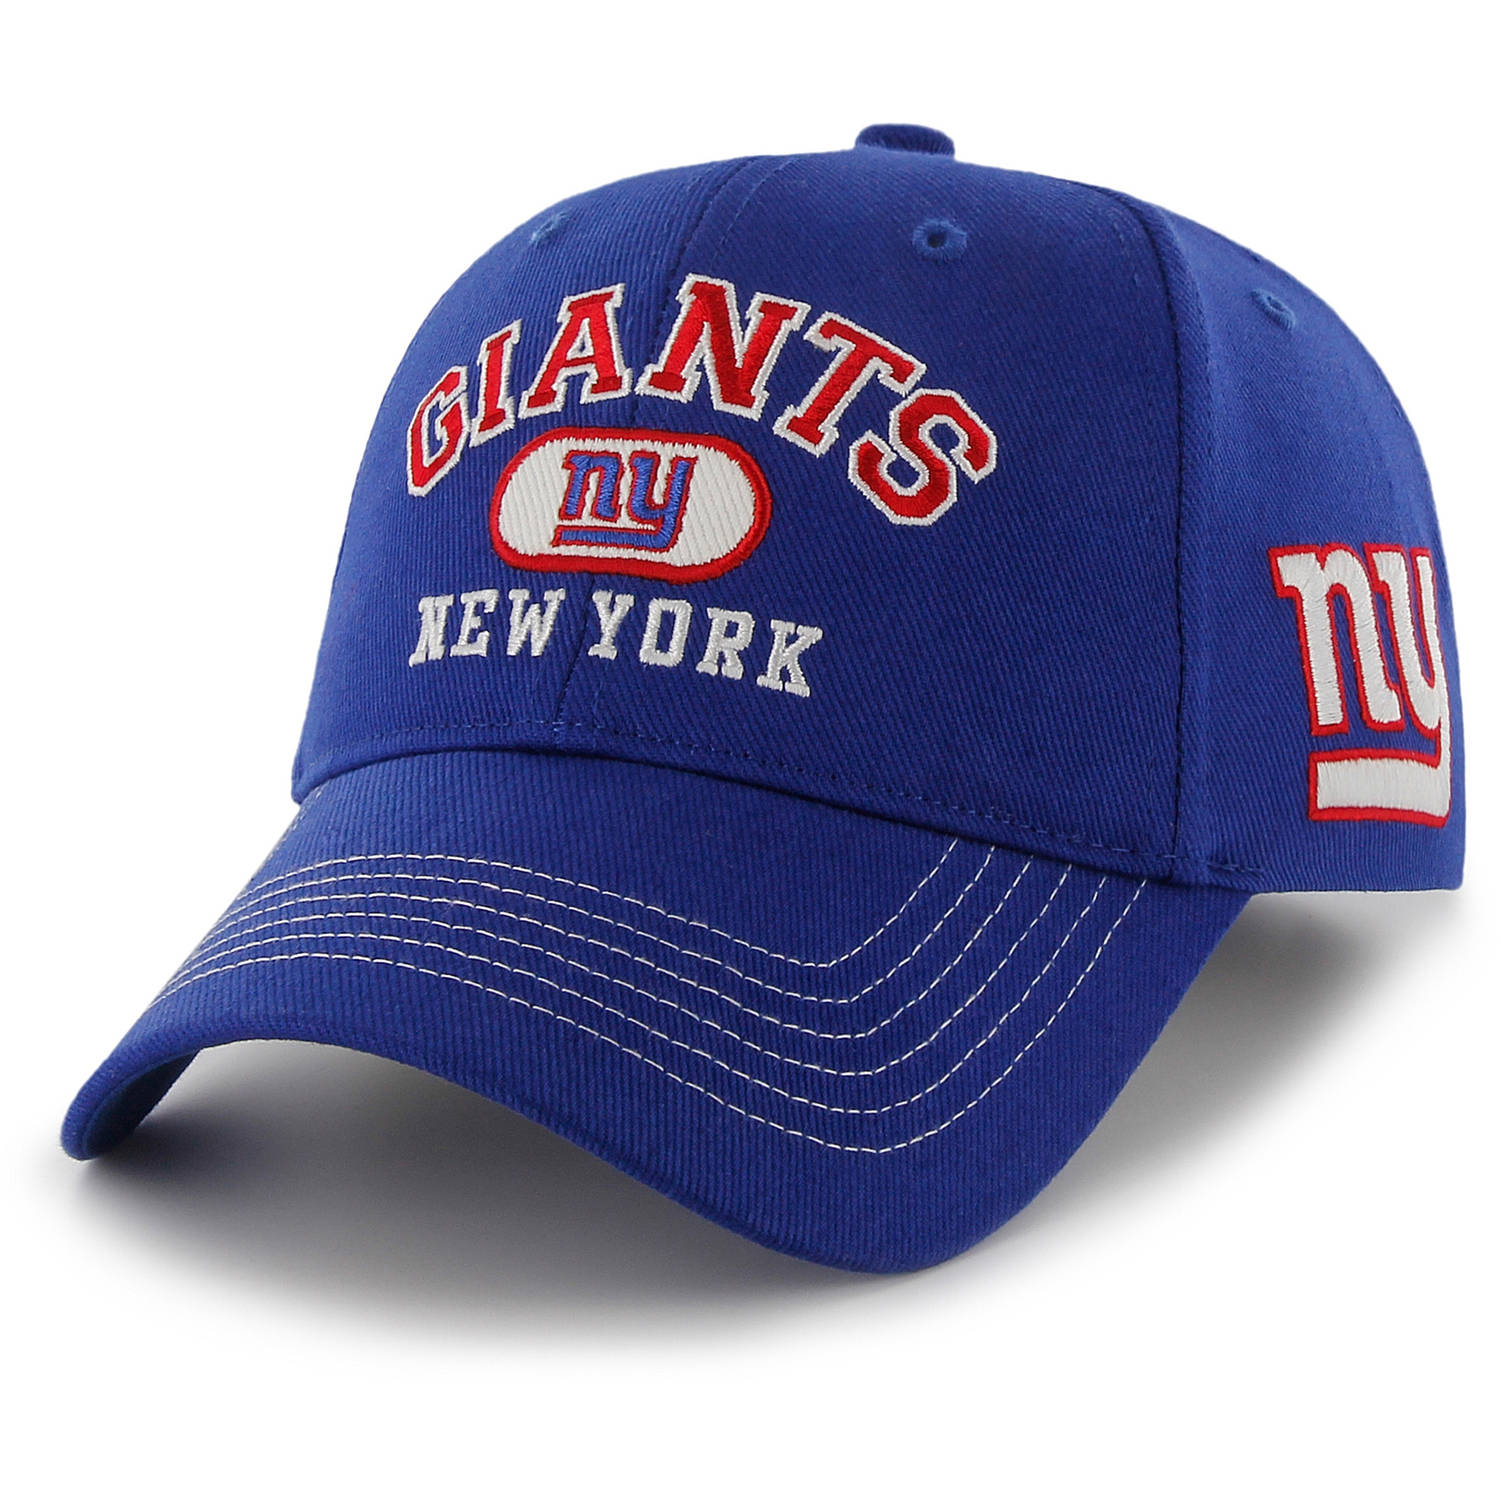 NFL New York Giants Draft Cap / Hat by Fan Favorite